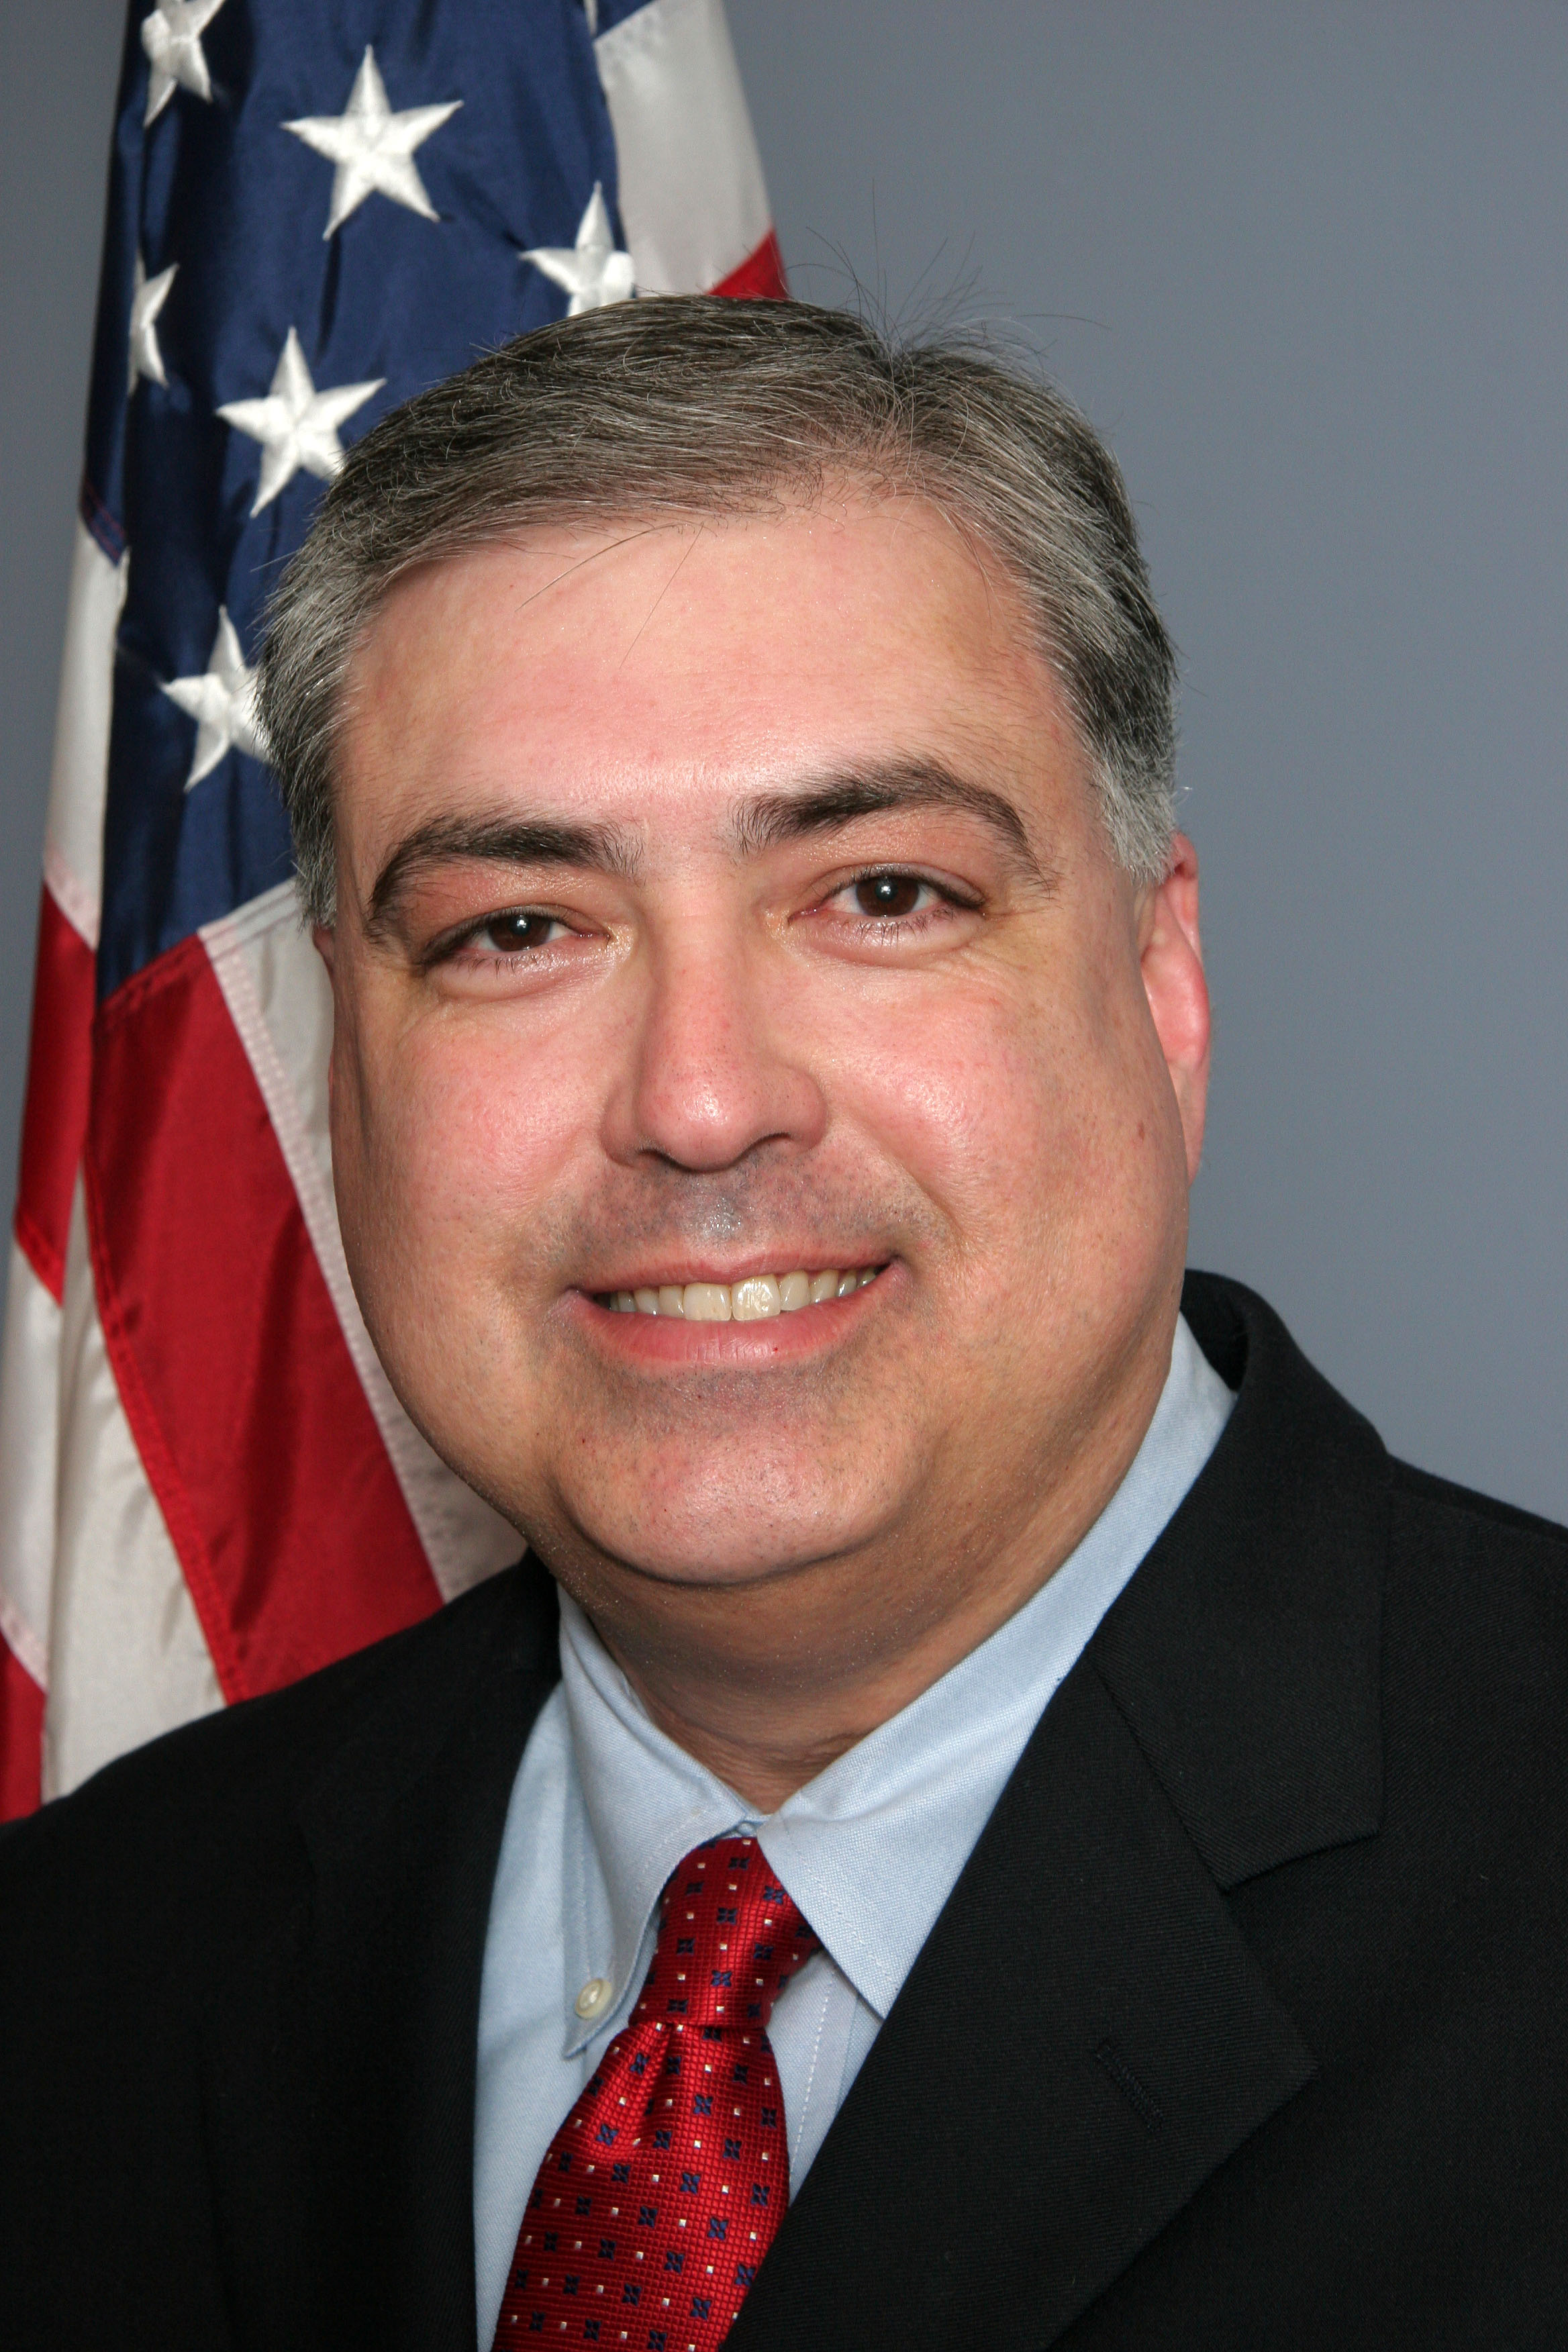 jorge martinez offiical photo.jpg